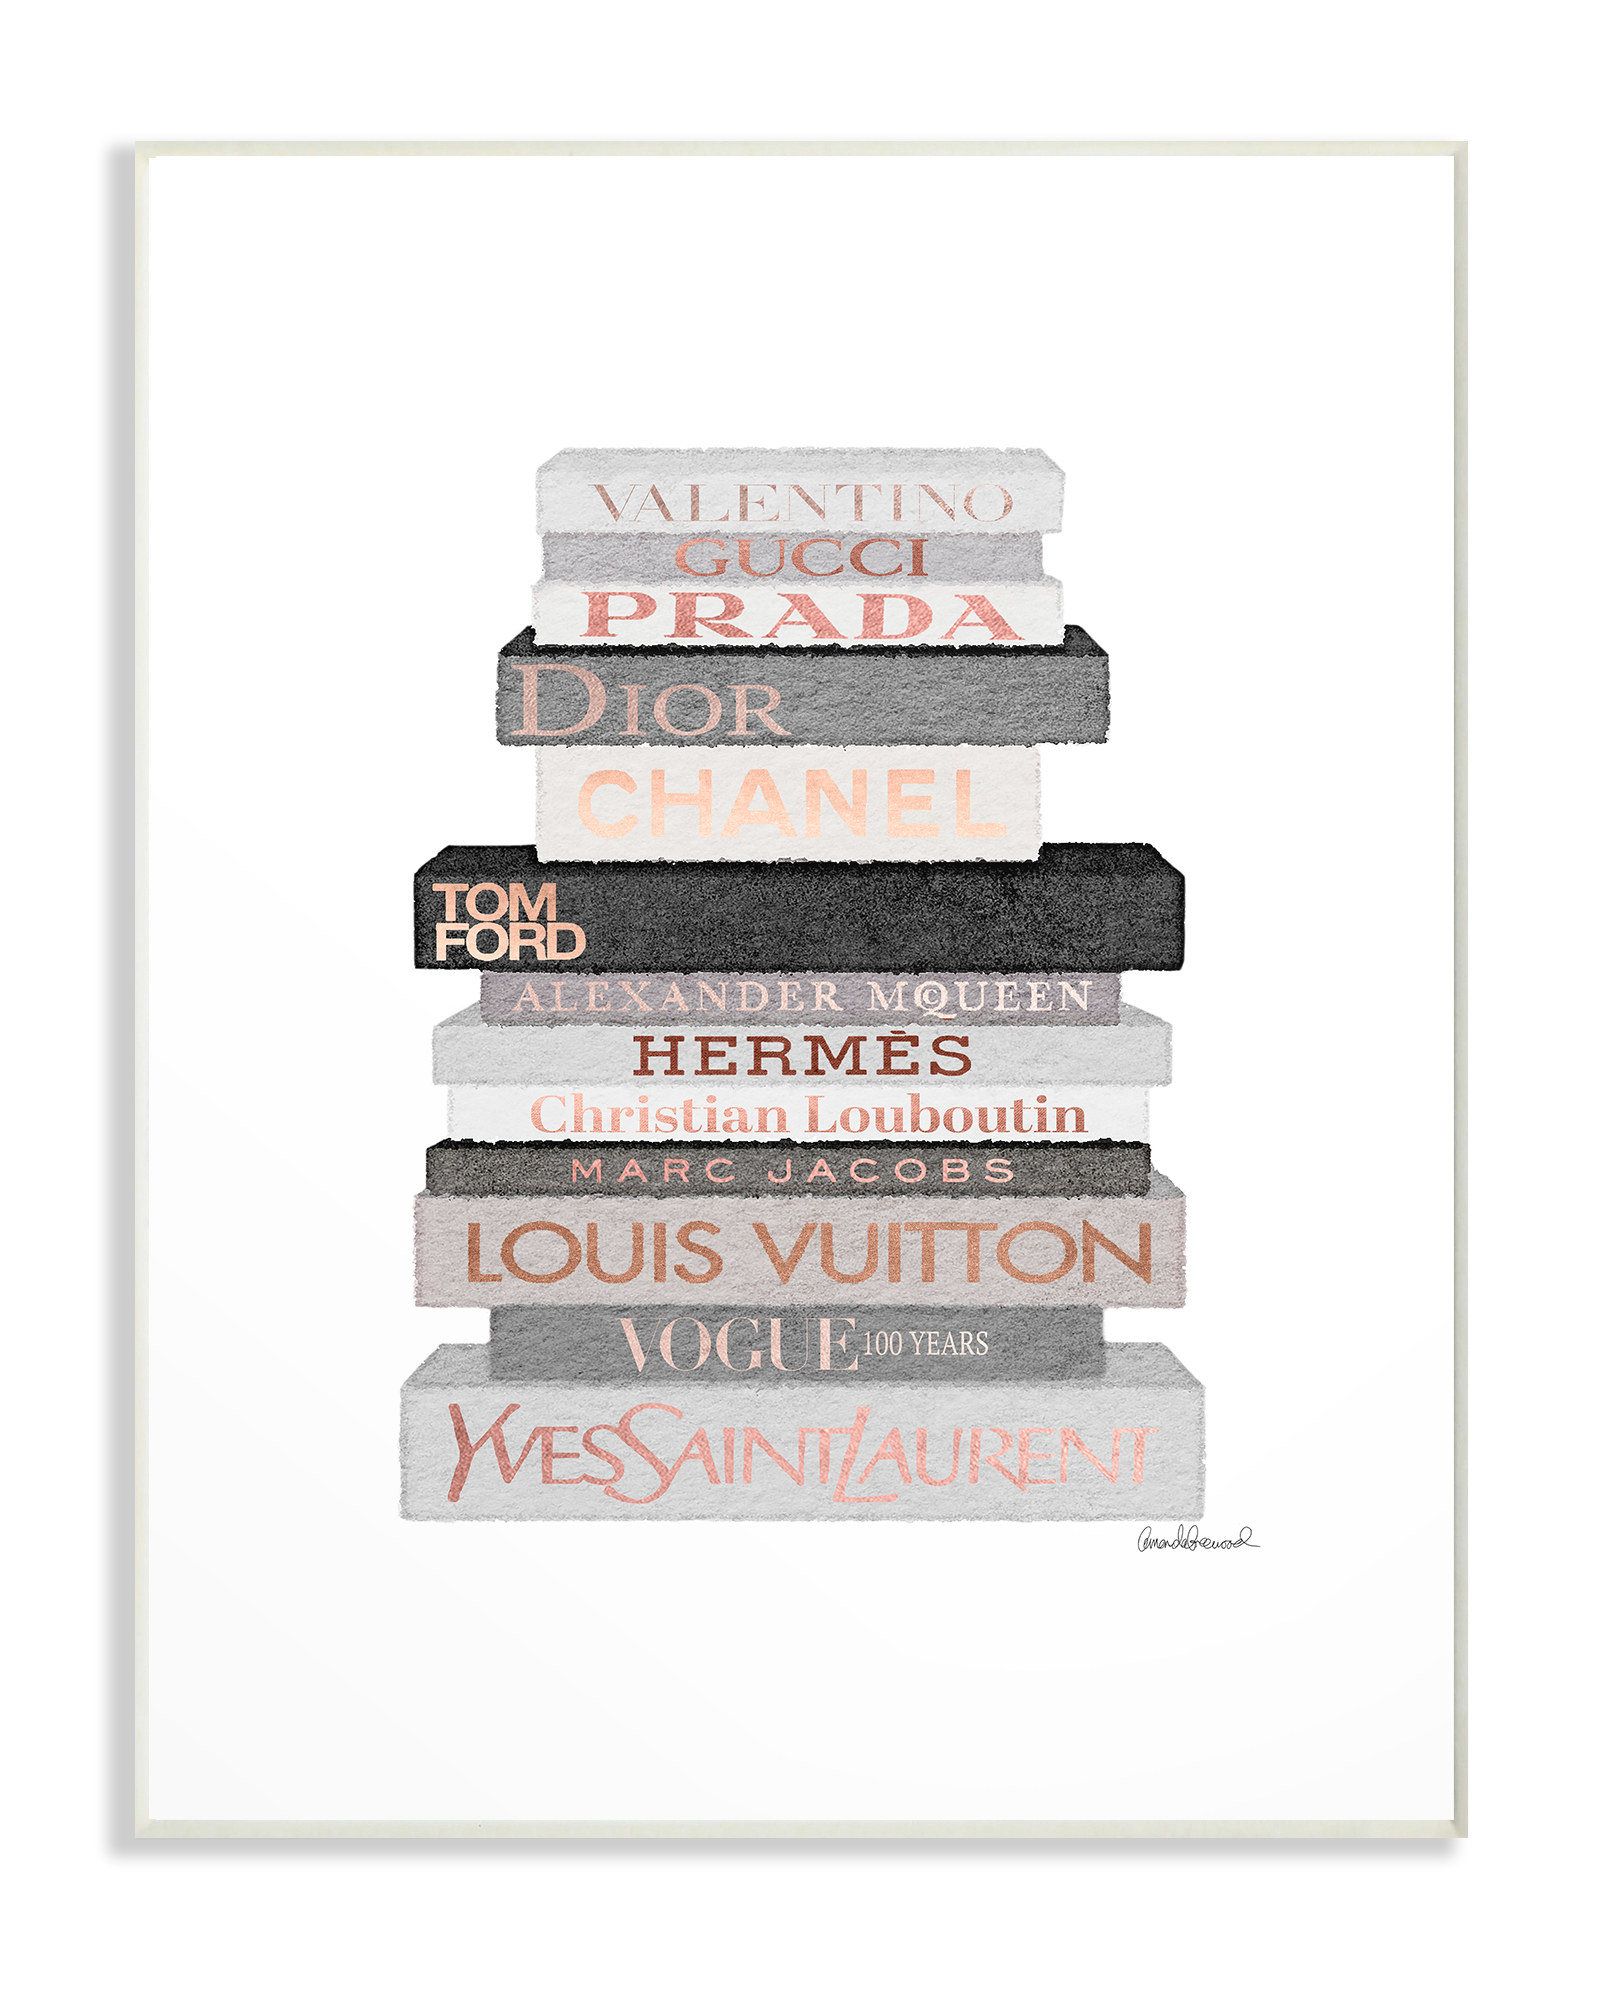 Gray, pink, and black print of books stacked that had fashion label names on them